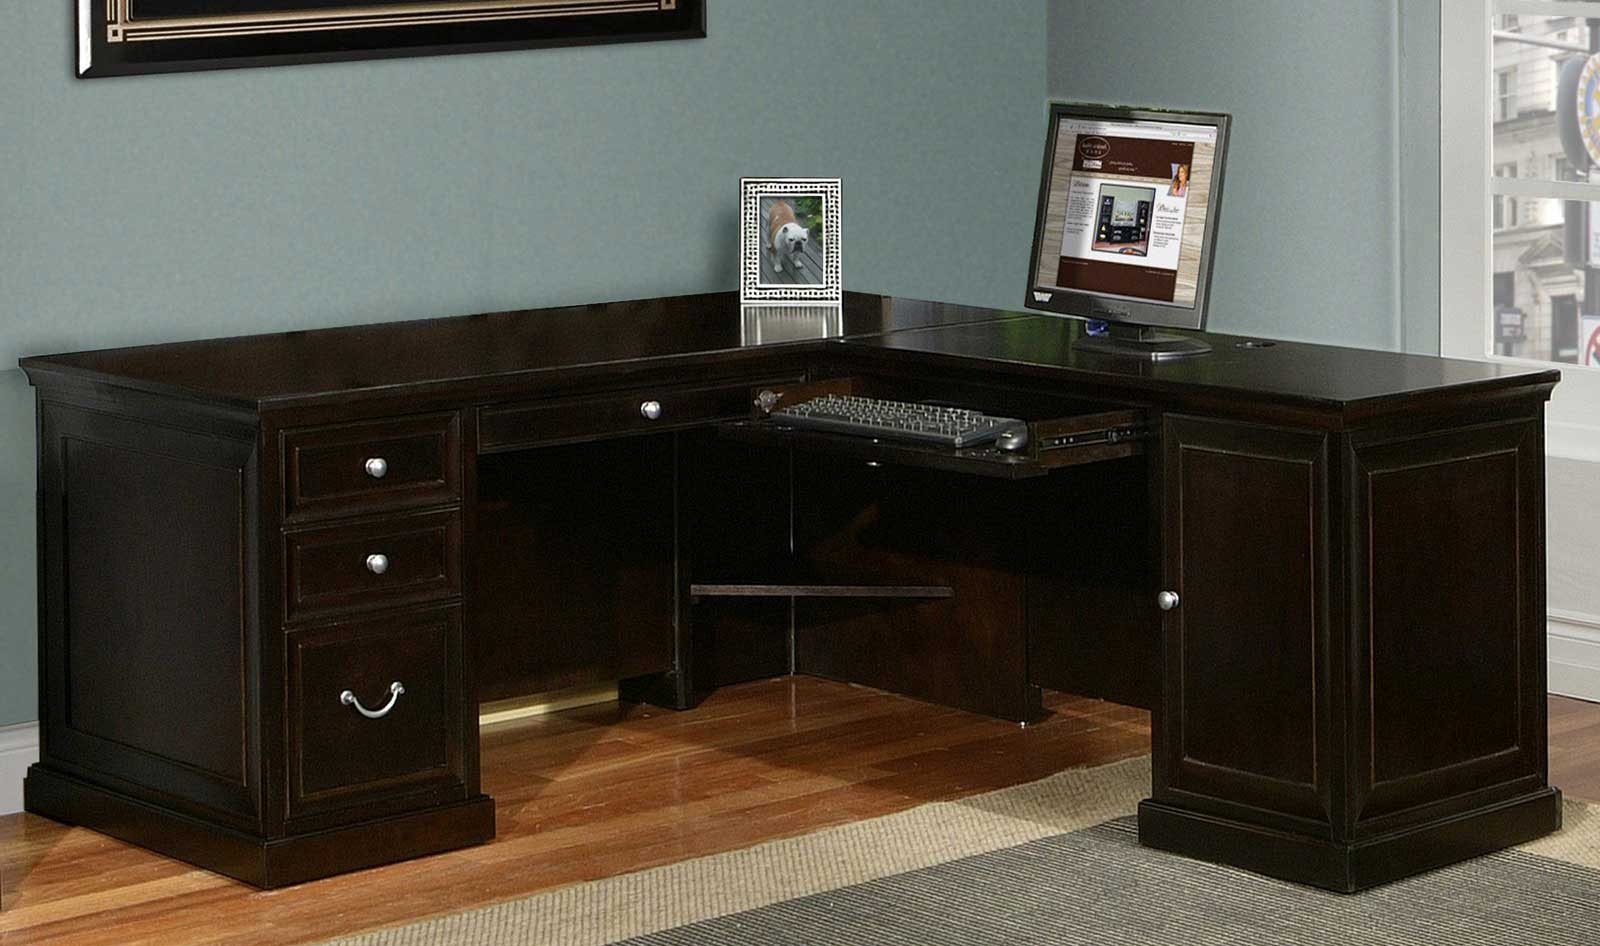 Fulton Contemporary L Shaped Computer Desk from Kathy Ireland